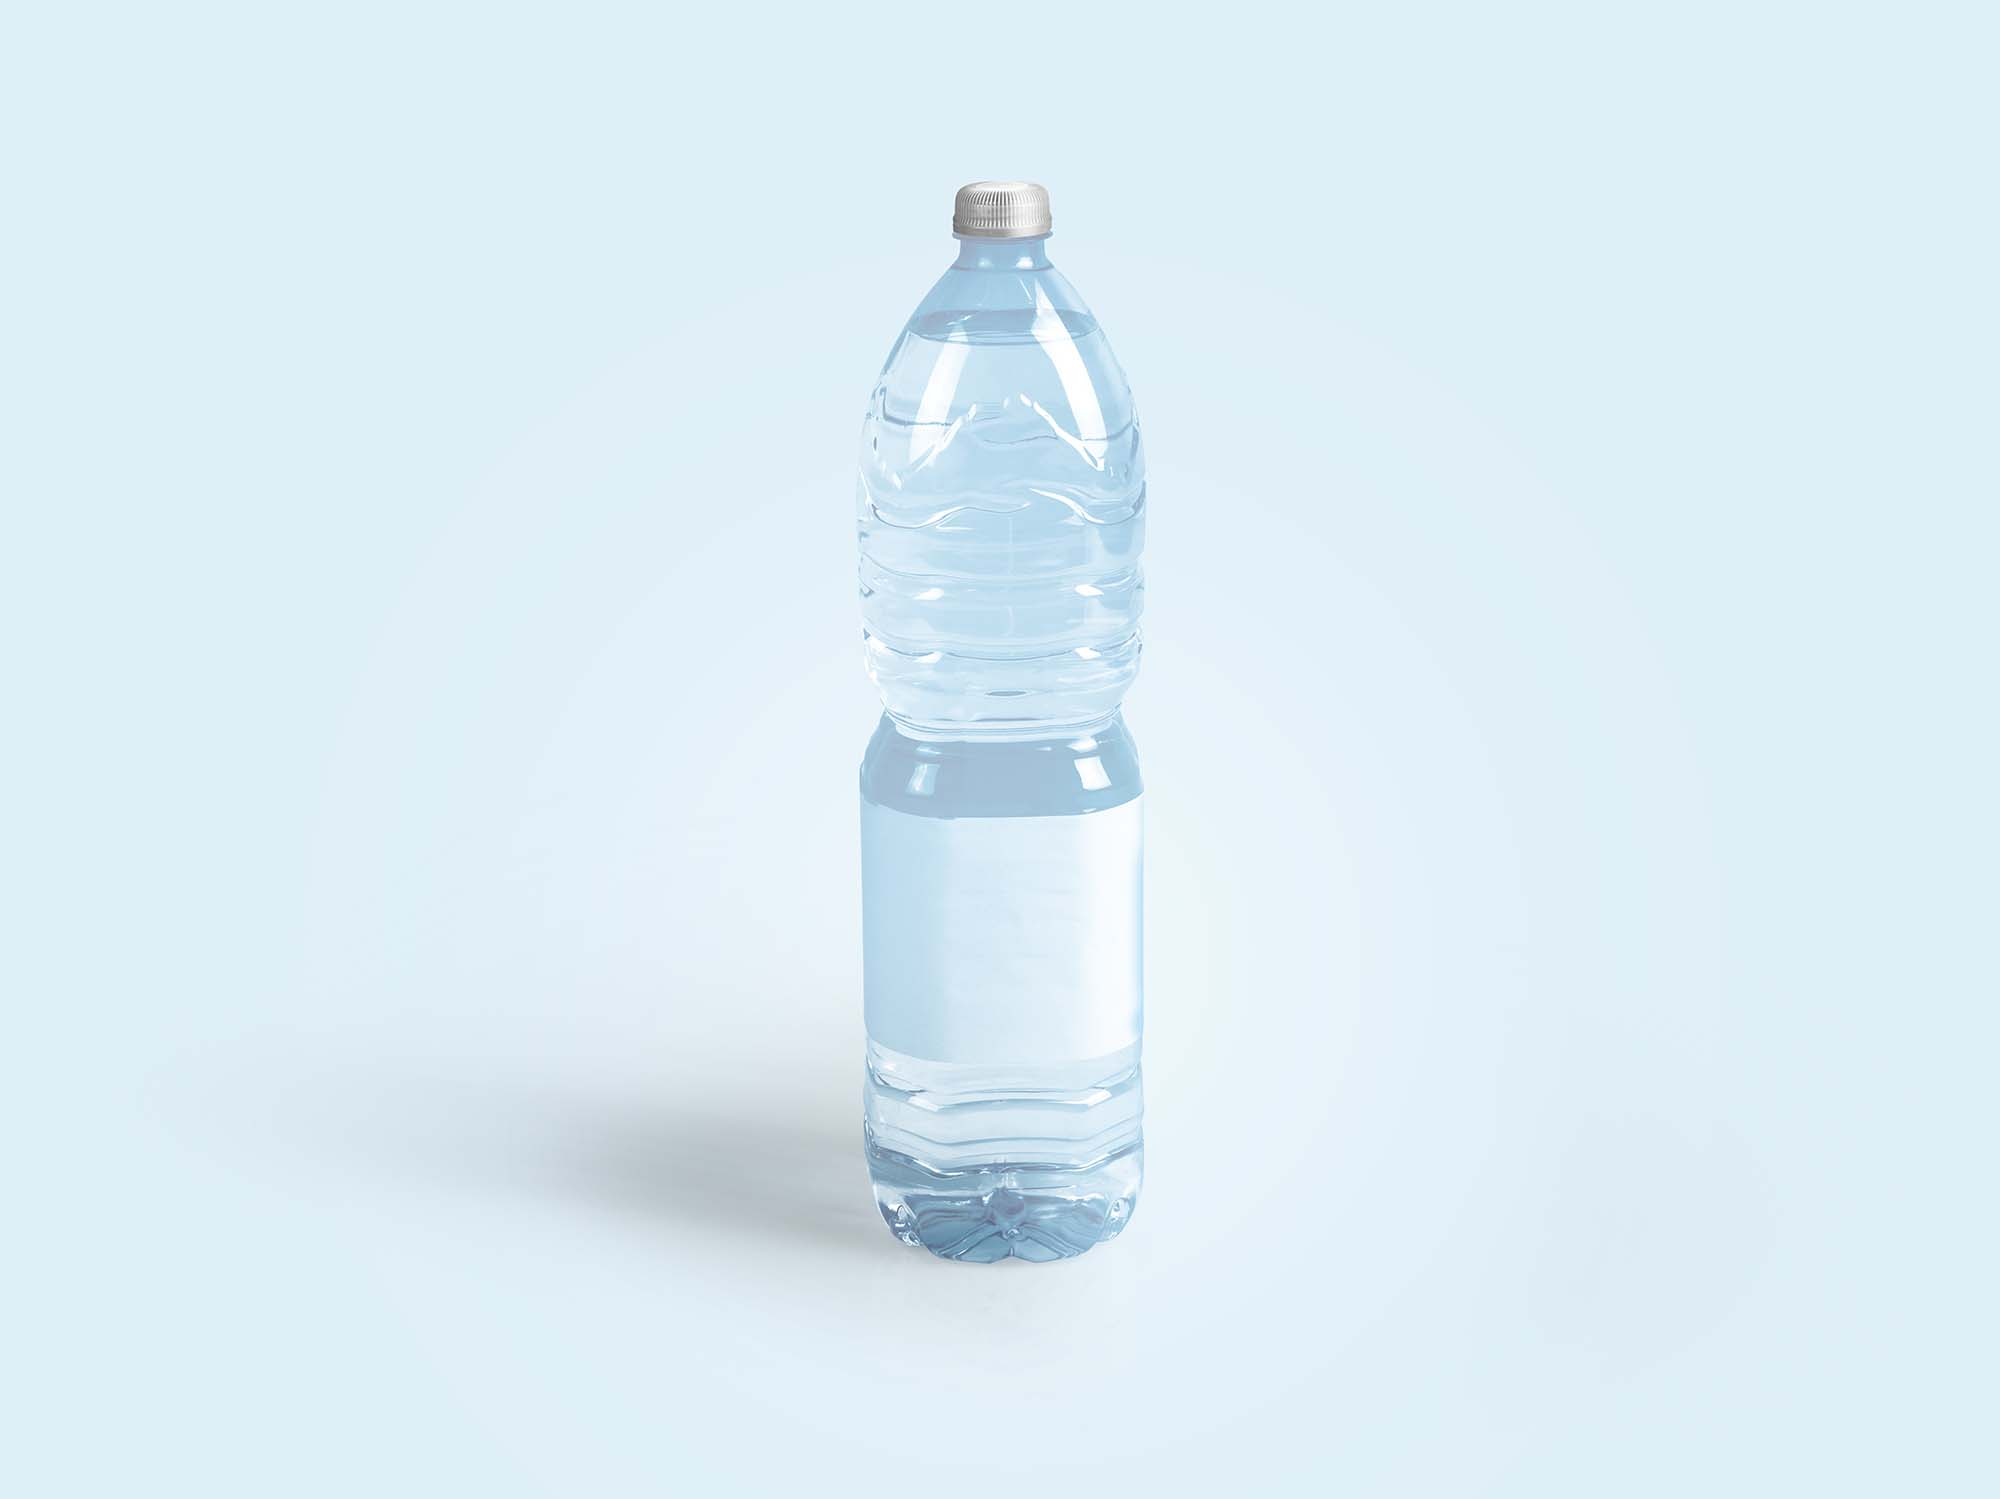 Drinking Water Bottle Mockup 3